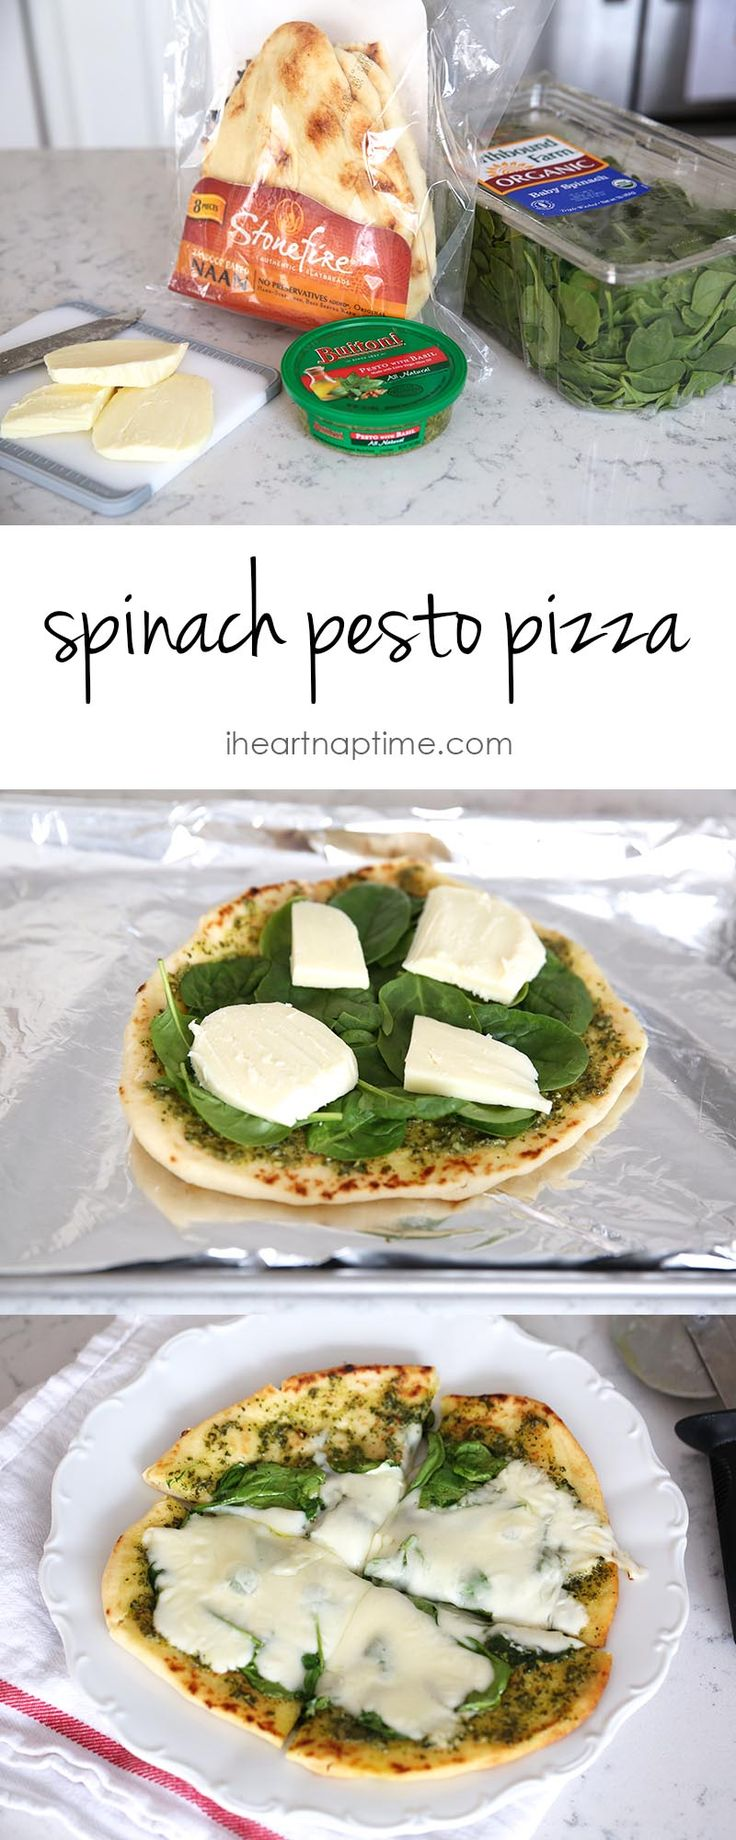 Spinach pesto pizza recipe.